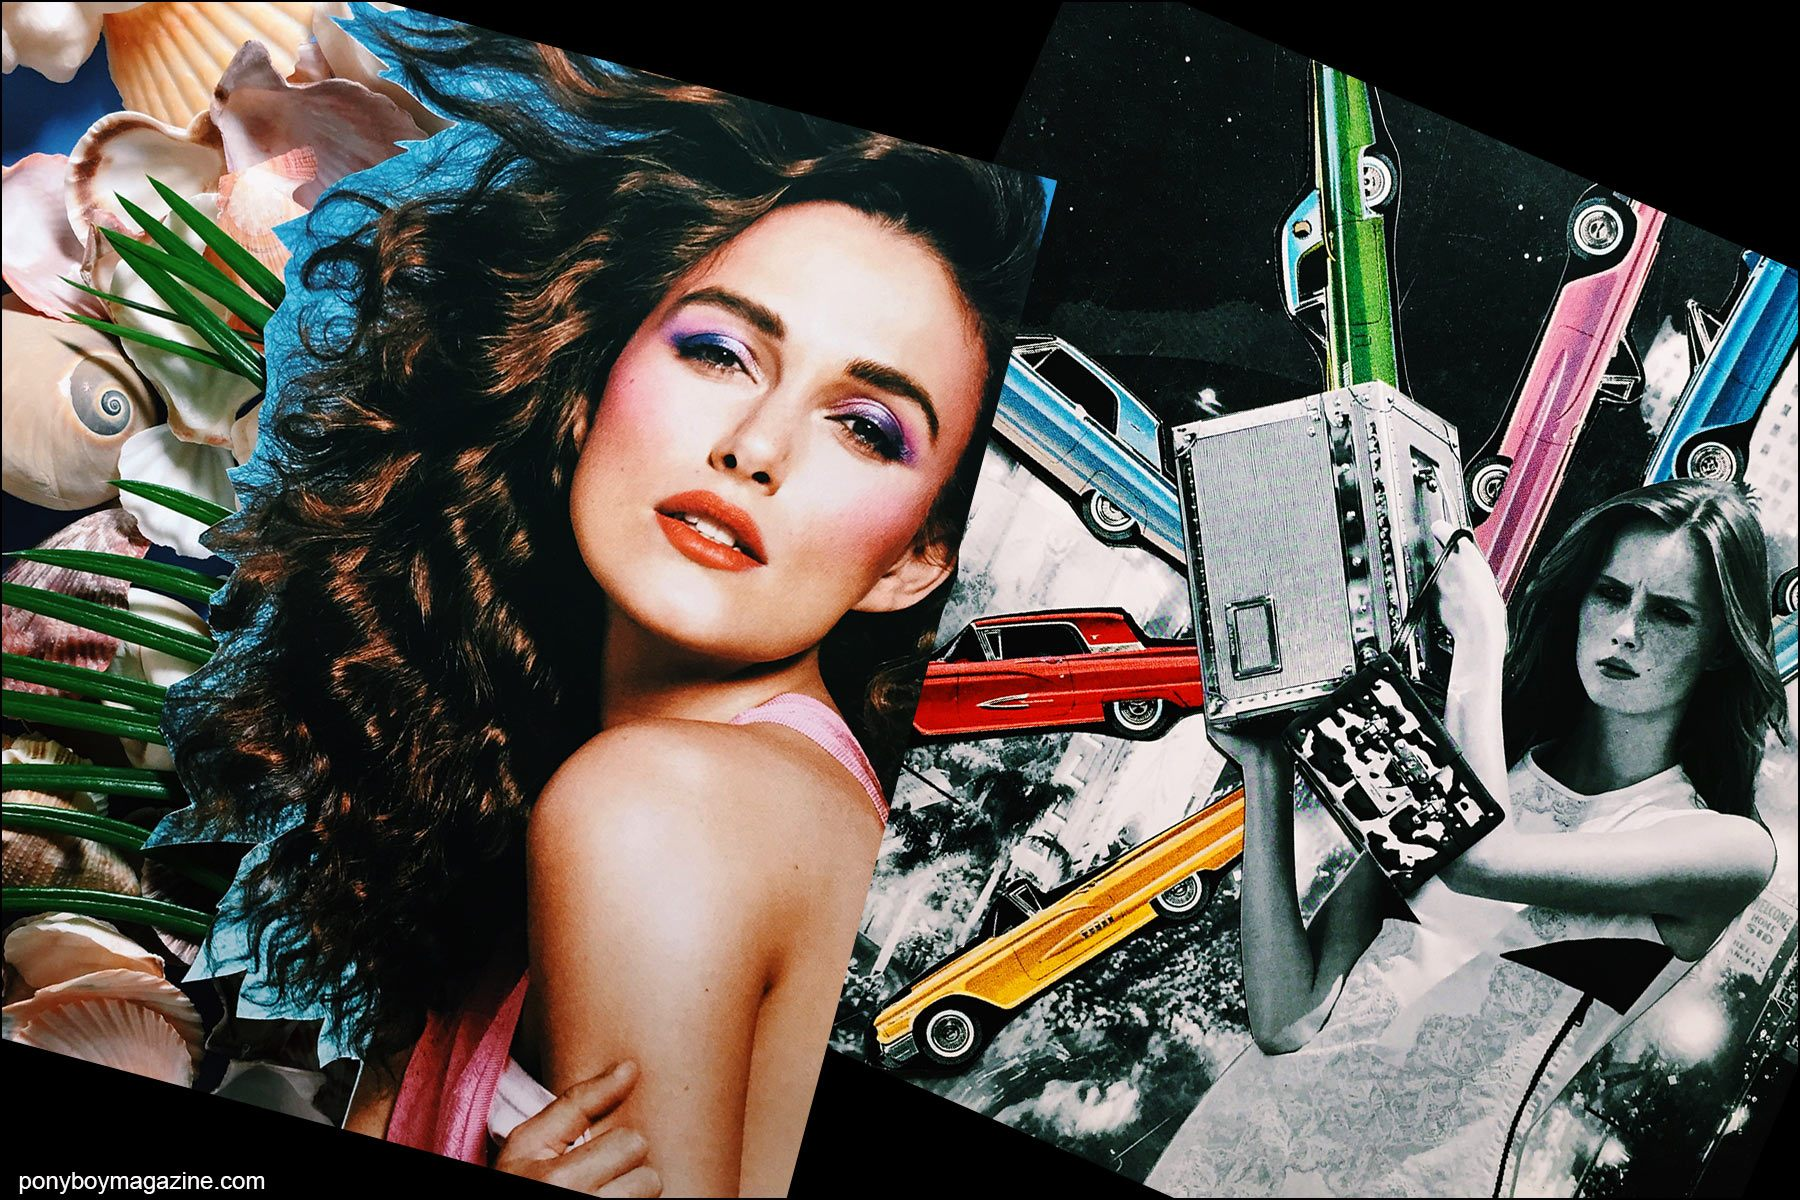 Collage artwork of Keira Knightly and Louis Vuitton images by Patrick Keohane for RS Theory. Ponyboy magazine NY.